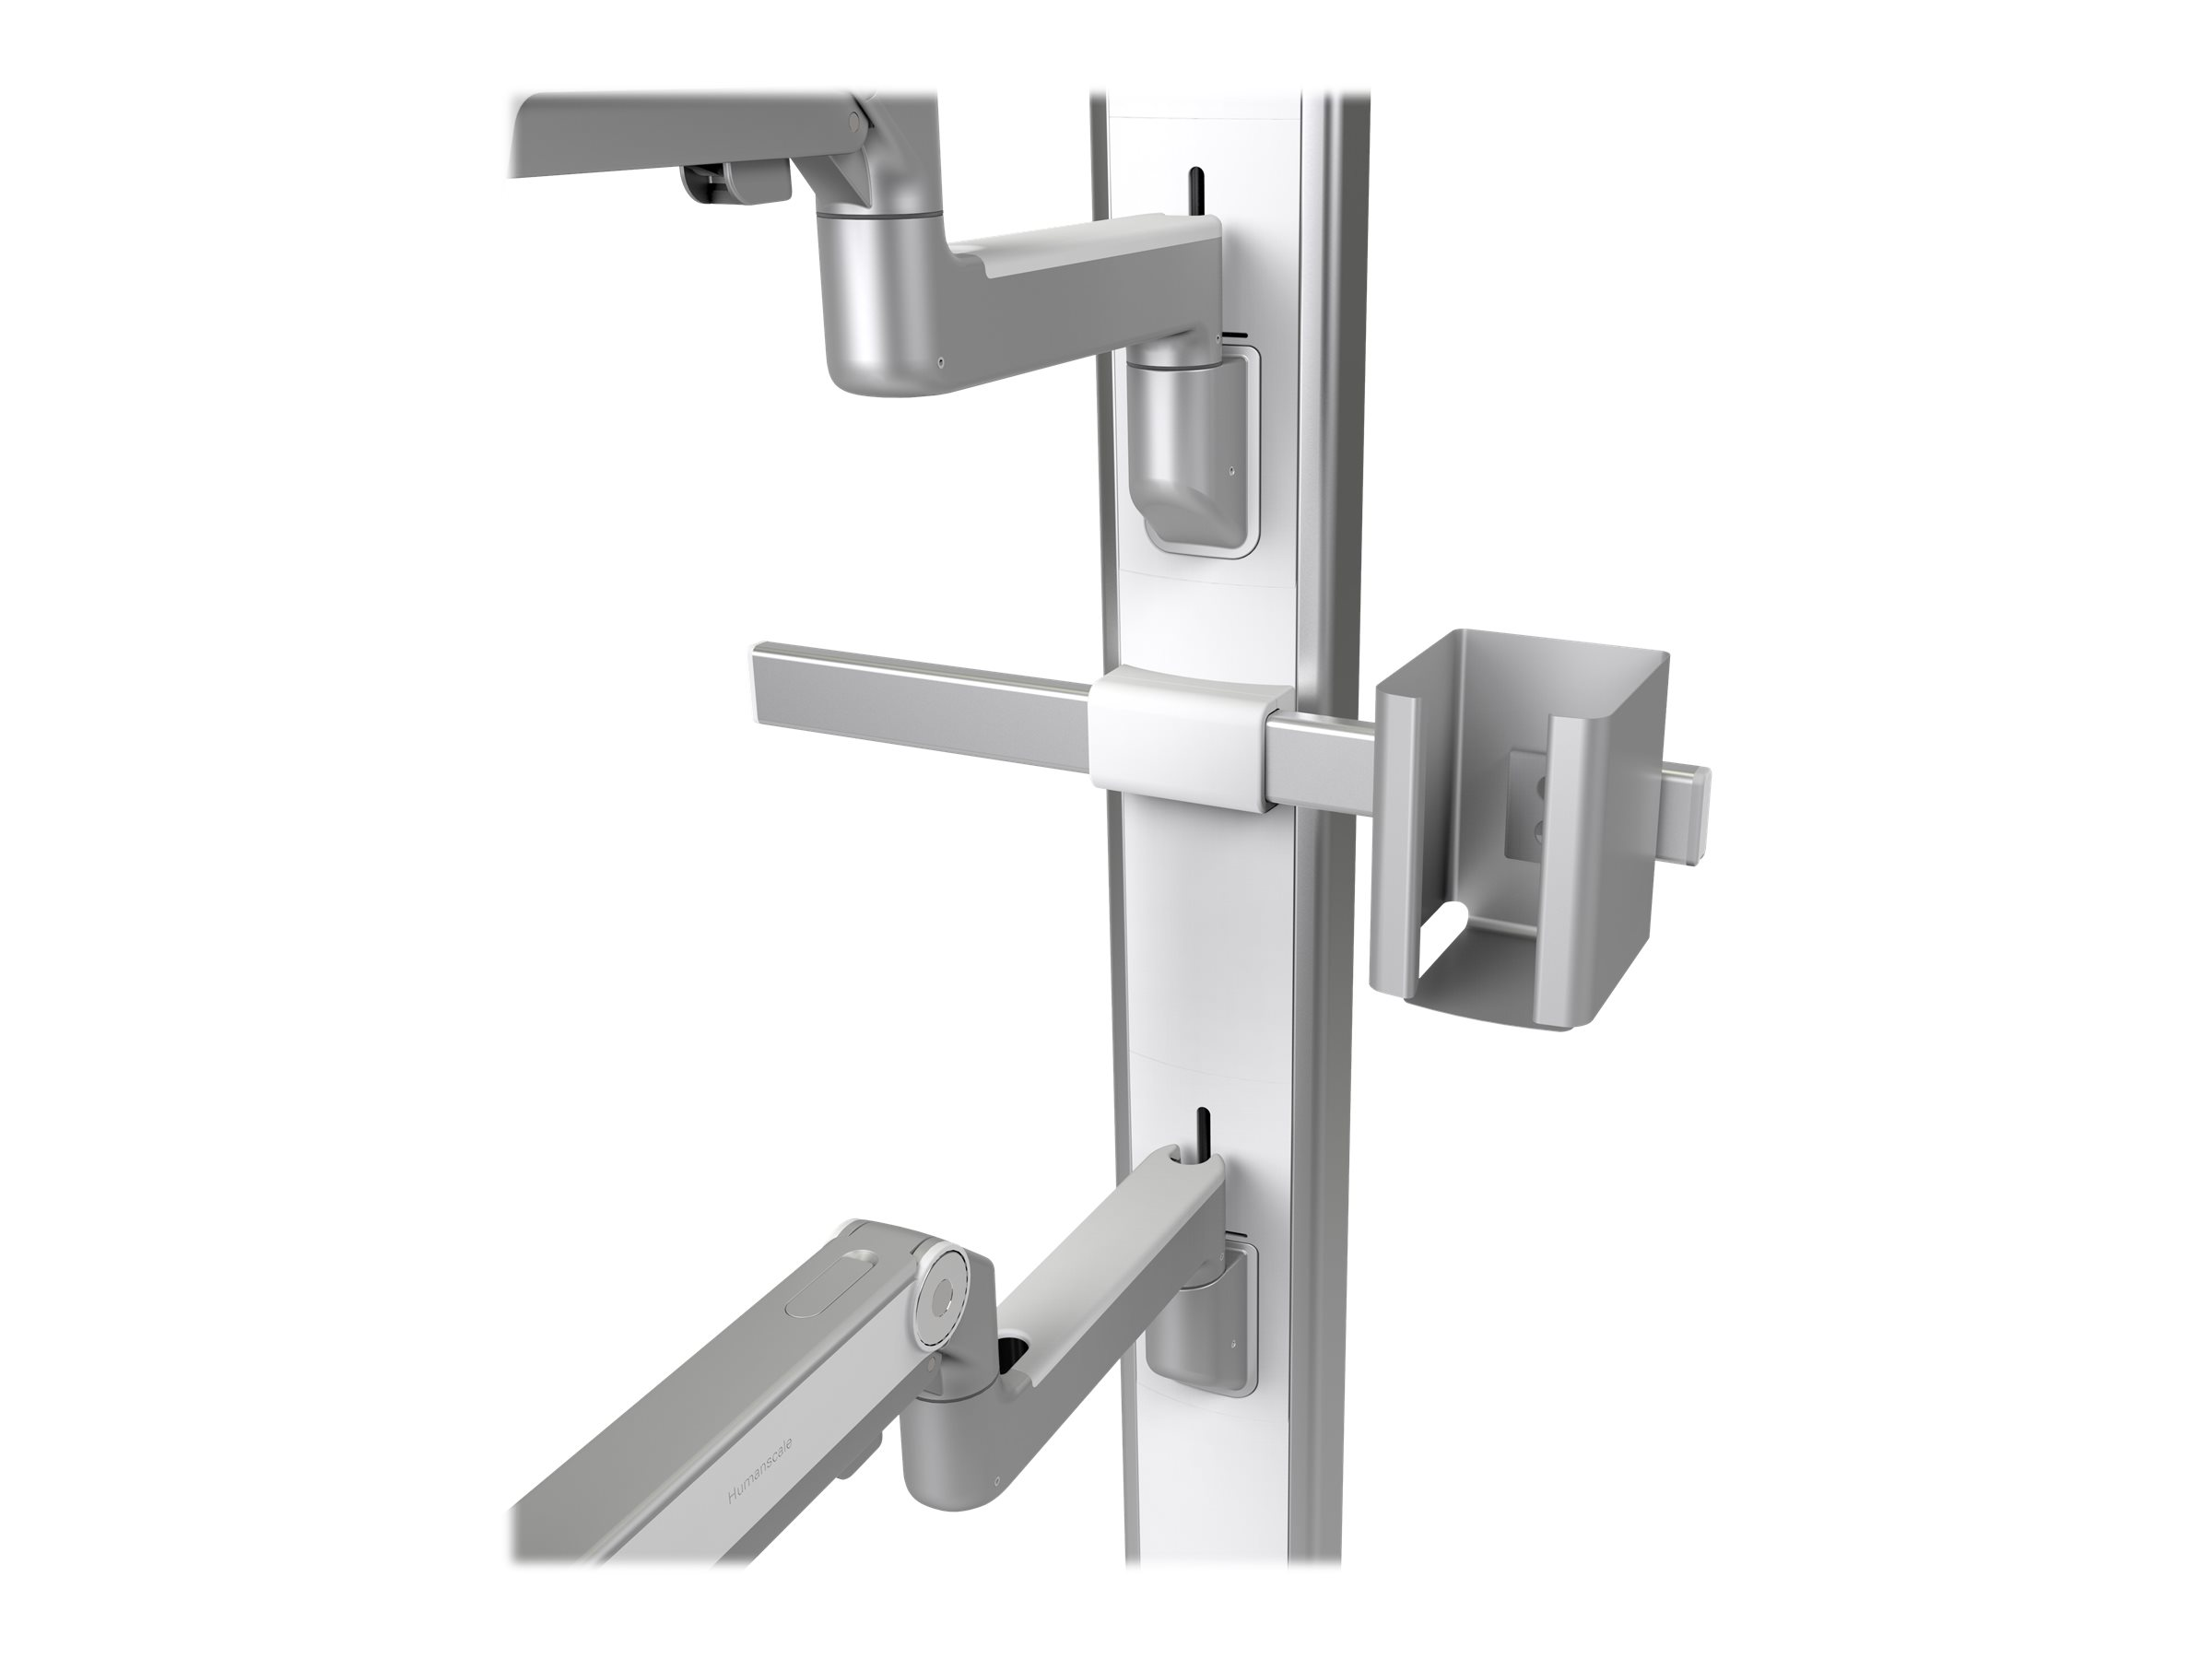 Humanscale ViewPoint Sharps Container Holder - mounting component